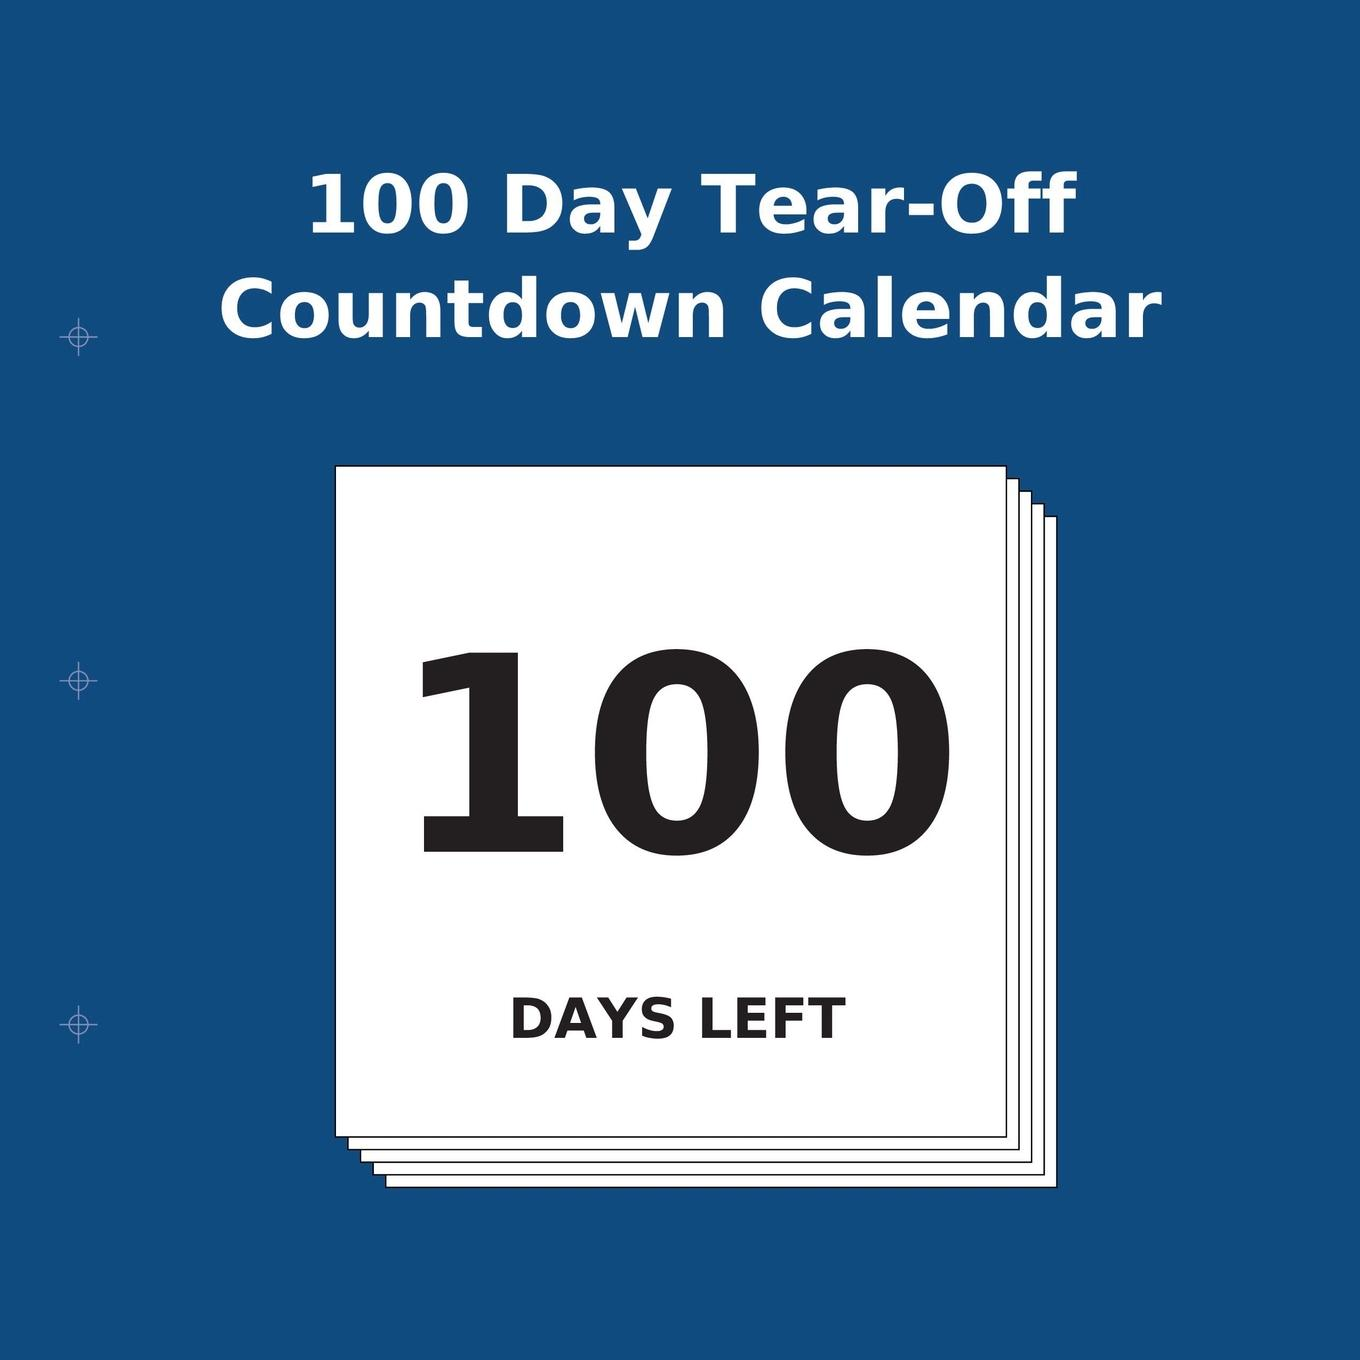 picture regarding 100 Day Countdown Printable named 100 Working day Tear-Off Countdown Calendar (Paperback)(Heavy Print)